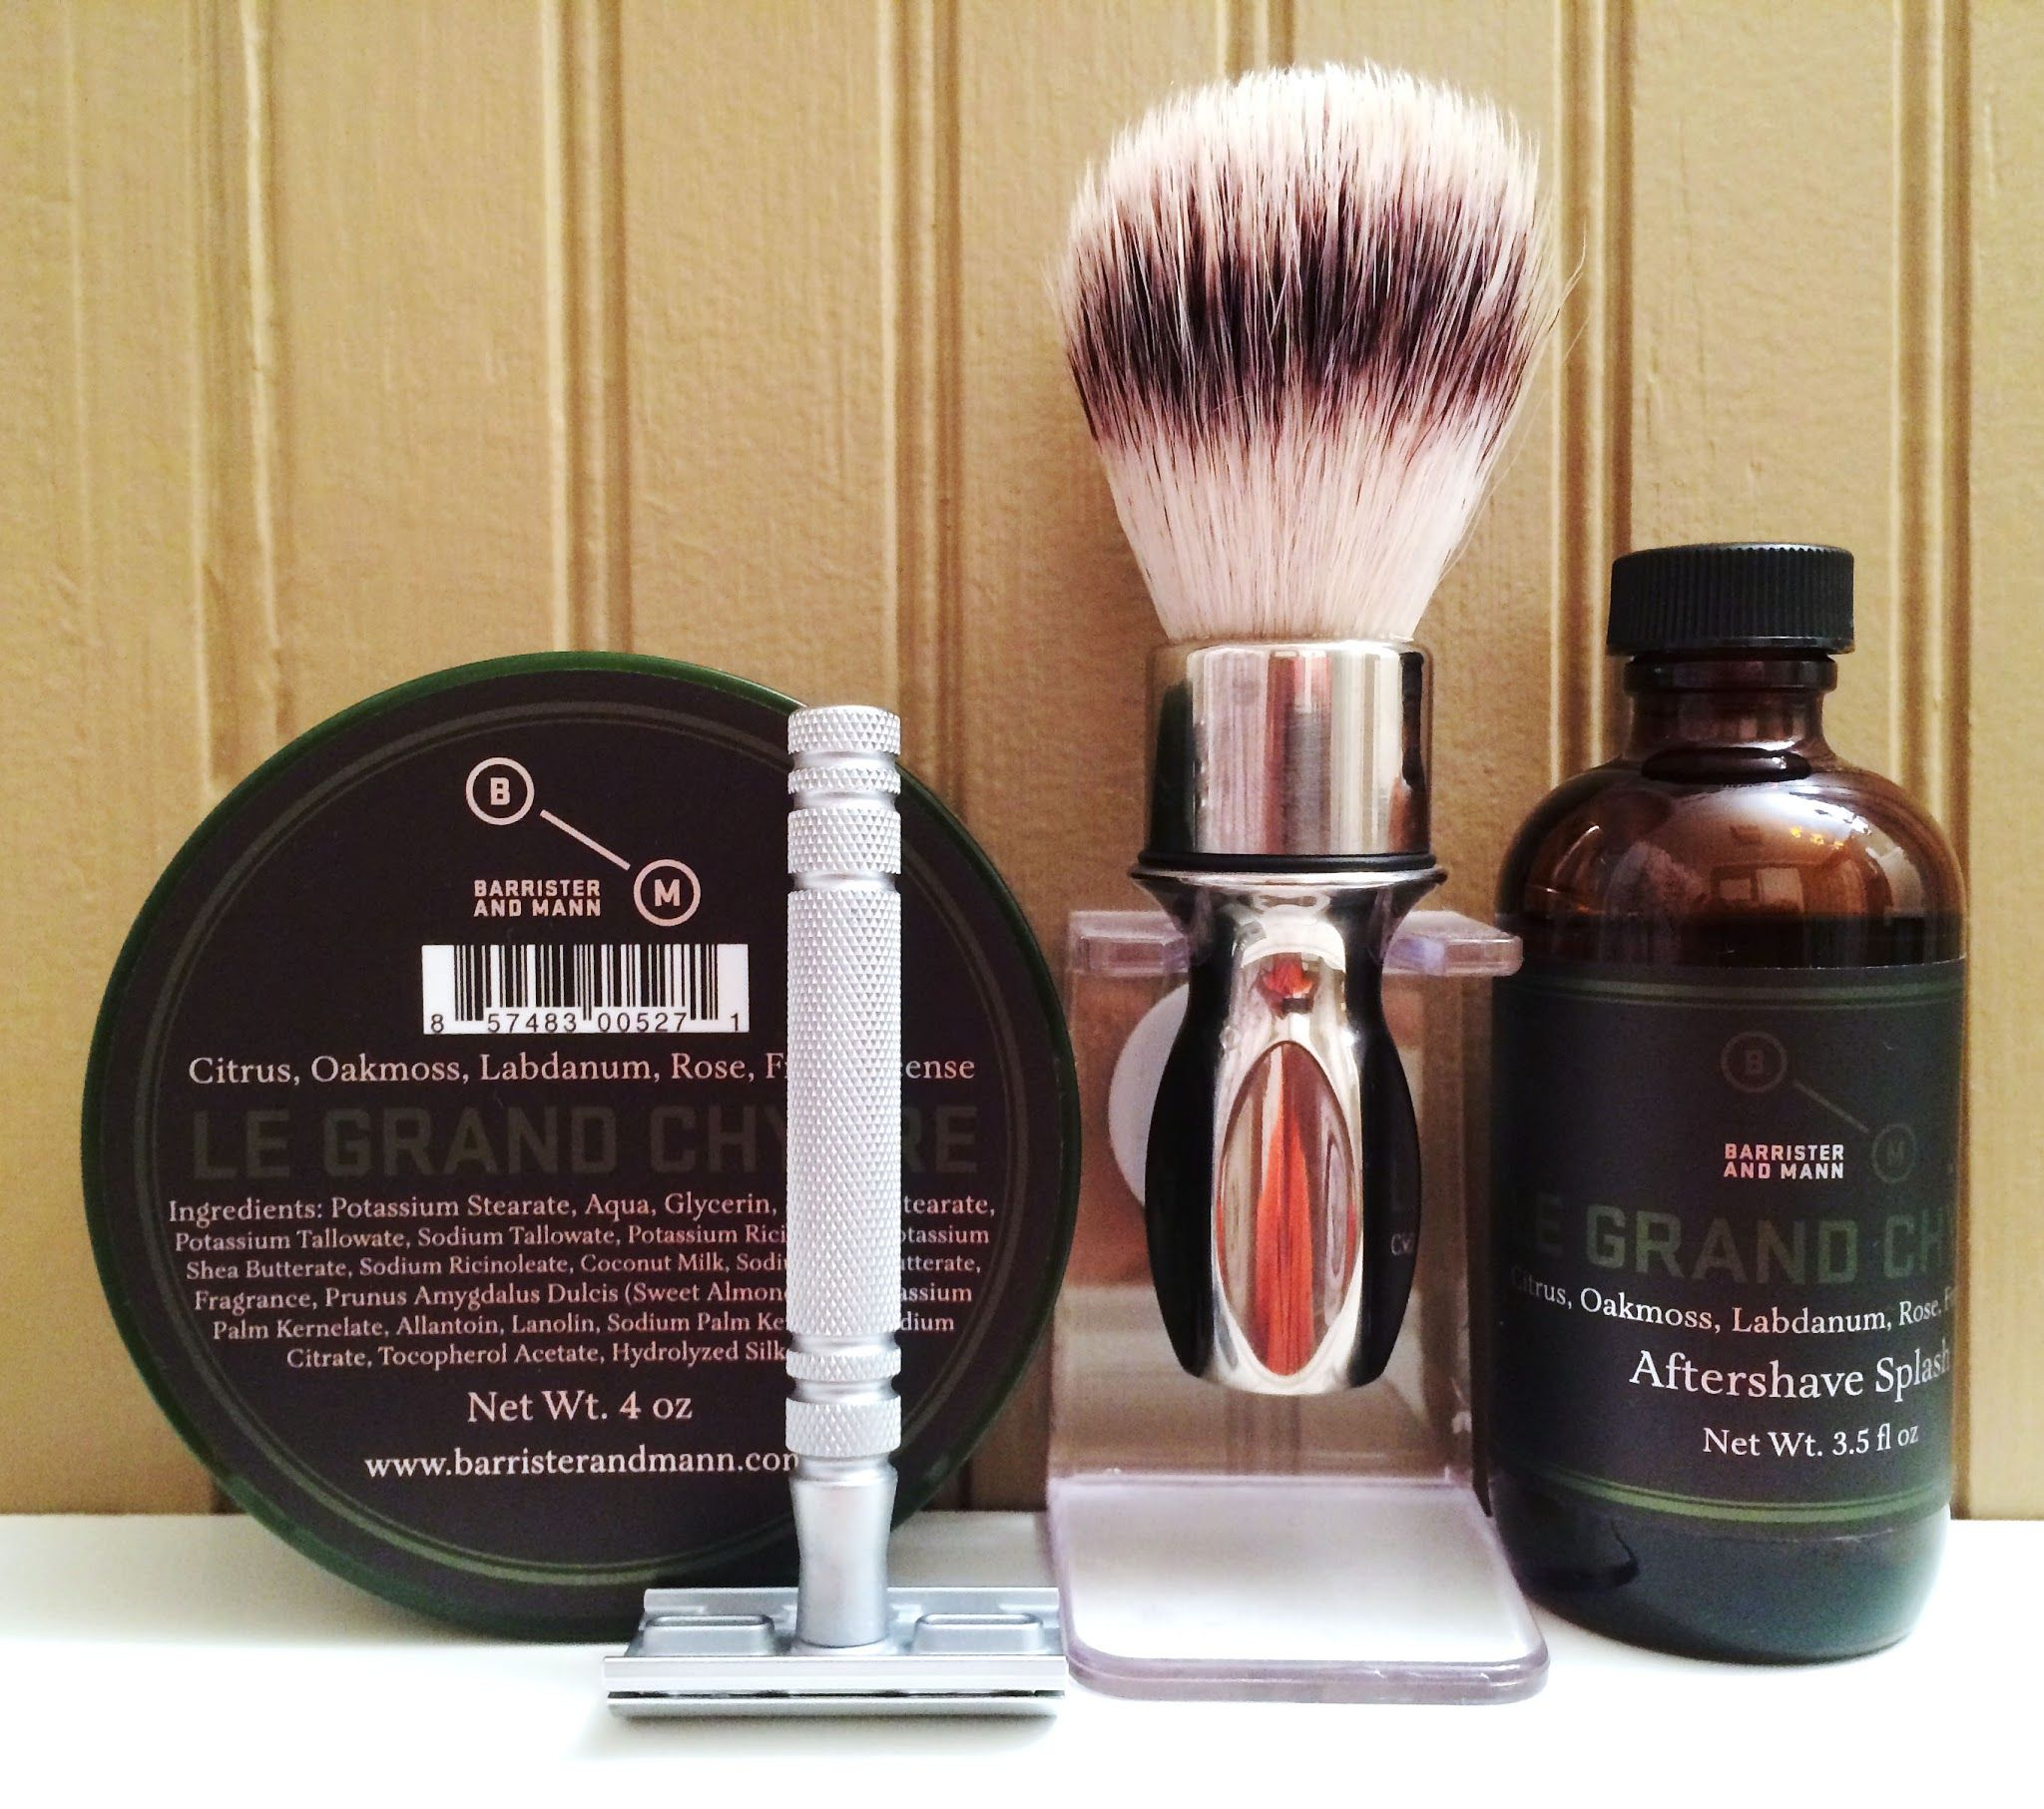 """Barrister and Mann """"Le Grand Chypre"""""""